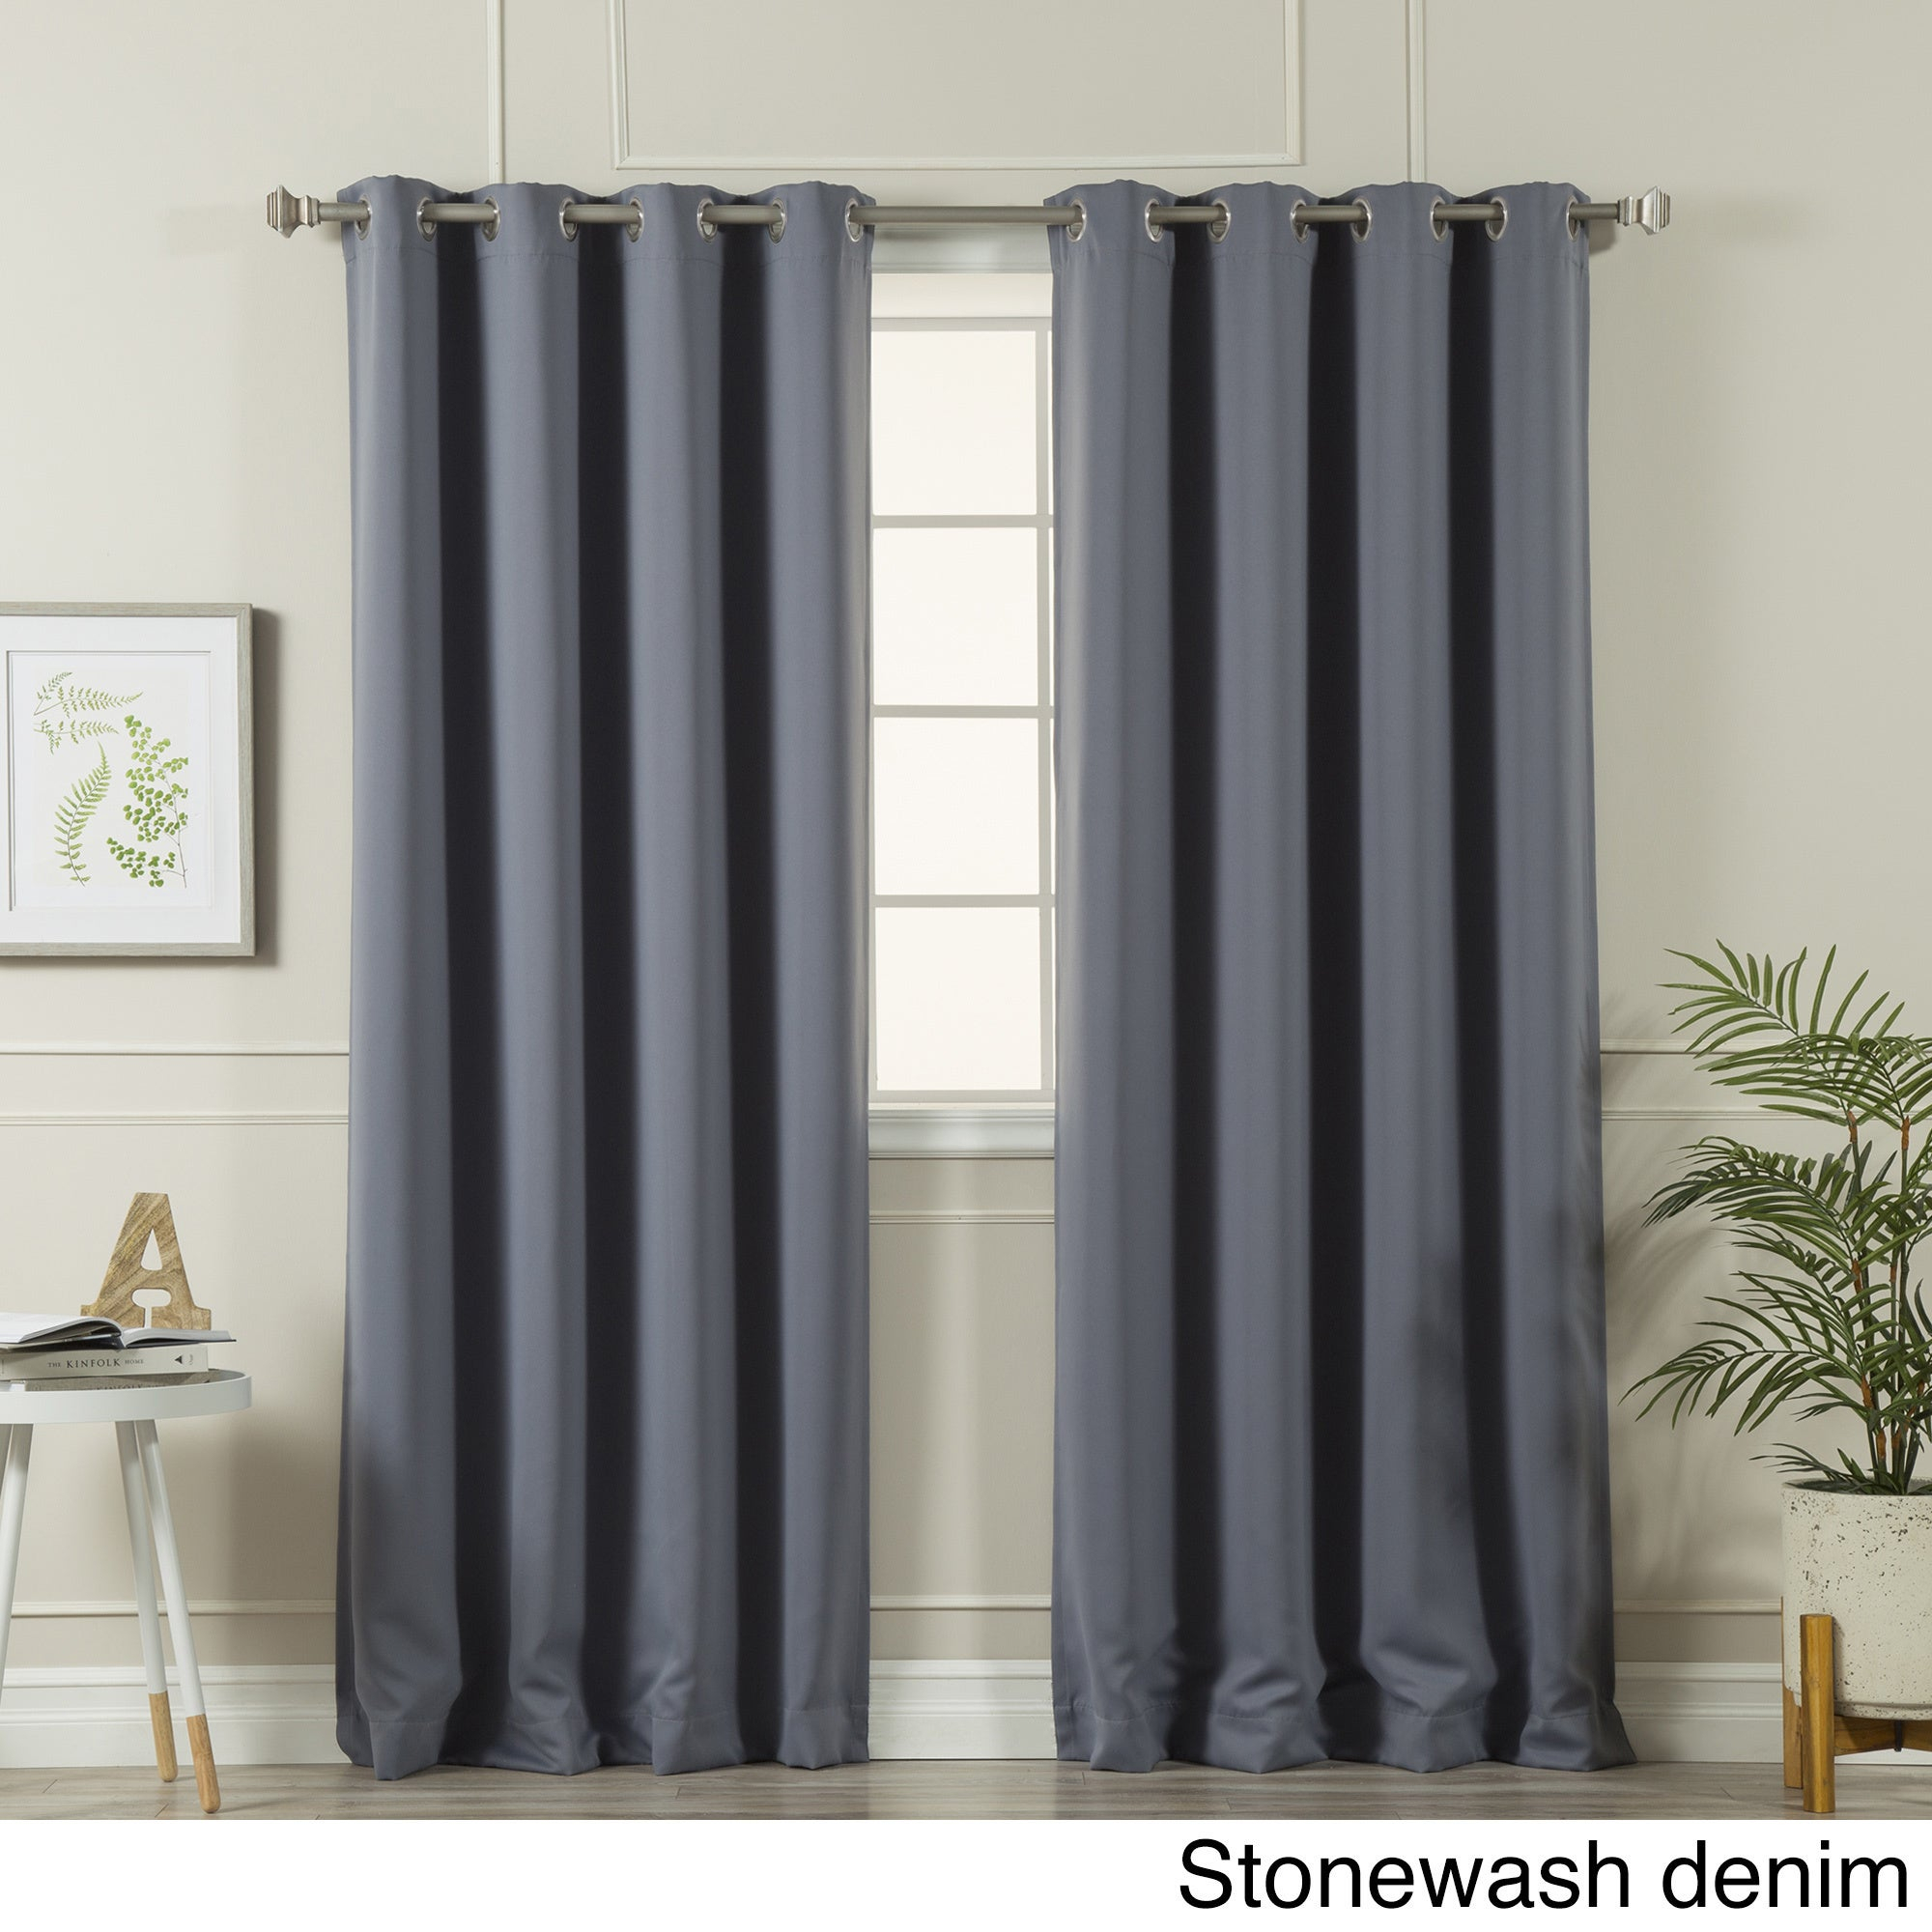 Aurora Home Silvertone Grommet Top Thermal Insulated Blackout Curtain Panel Pair Within Silvertone Grommet Thermal Insulated Blackout Curtain Panel Pairs (View 13 of 30)